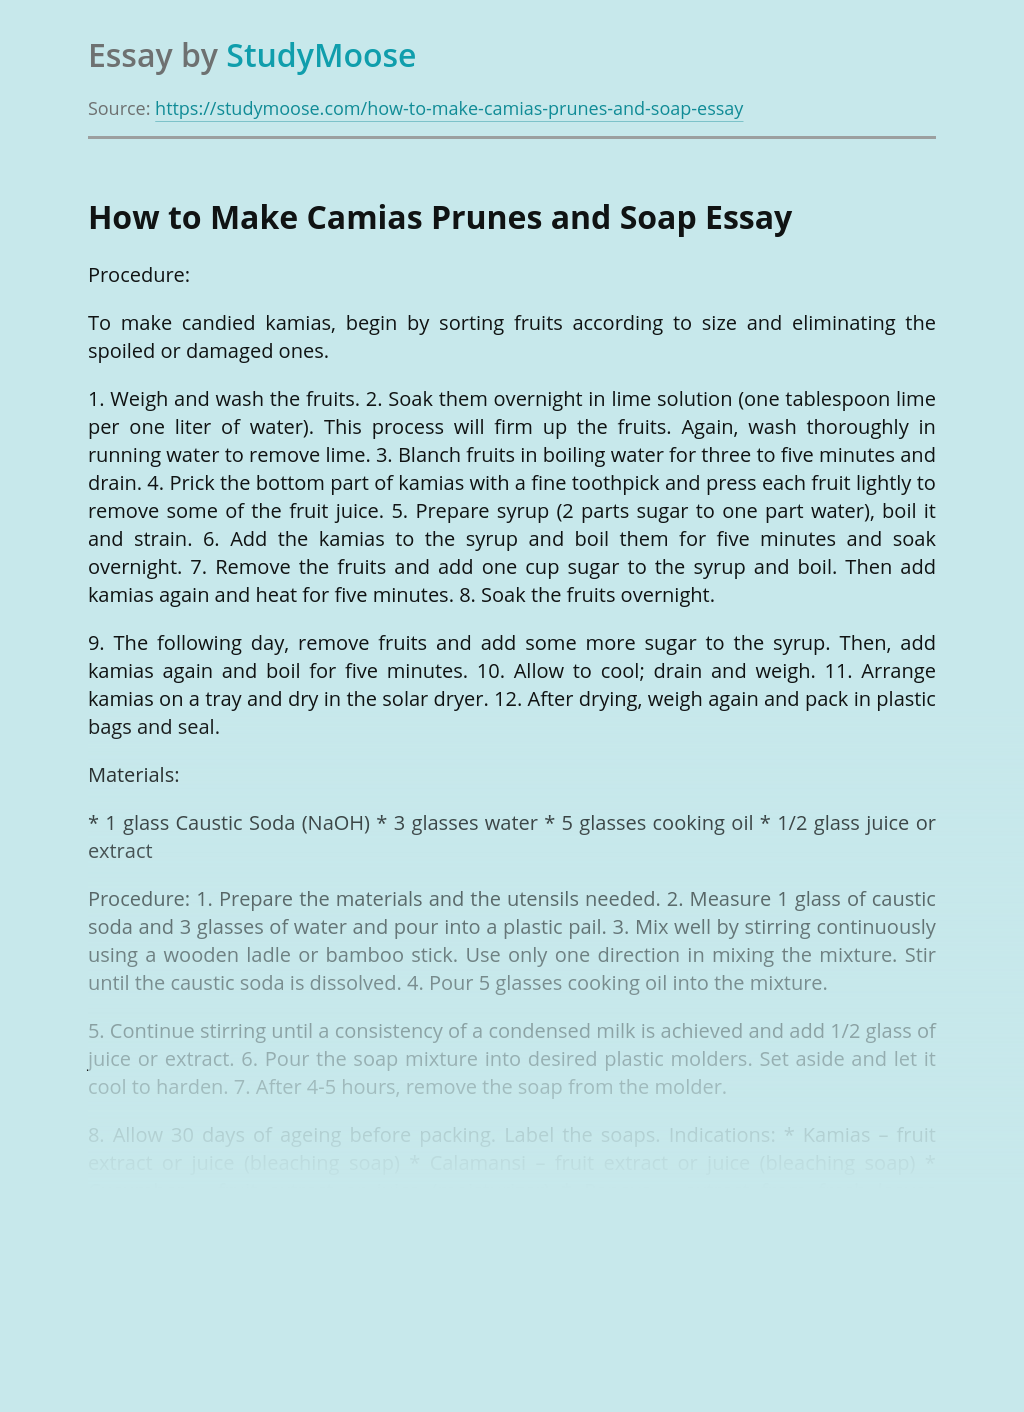 How to Make Camias Prunes and Soap